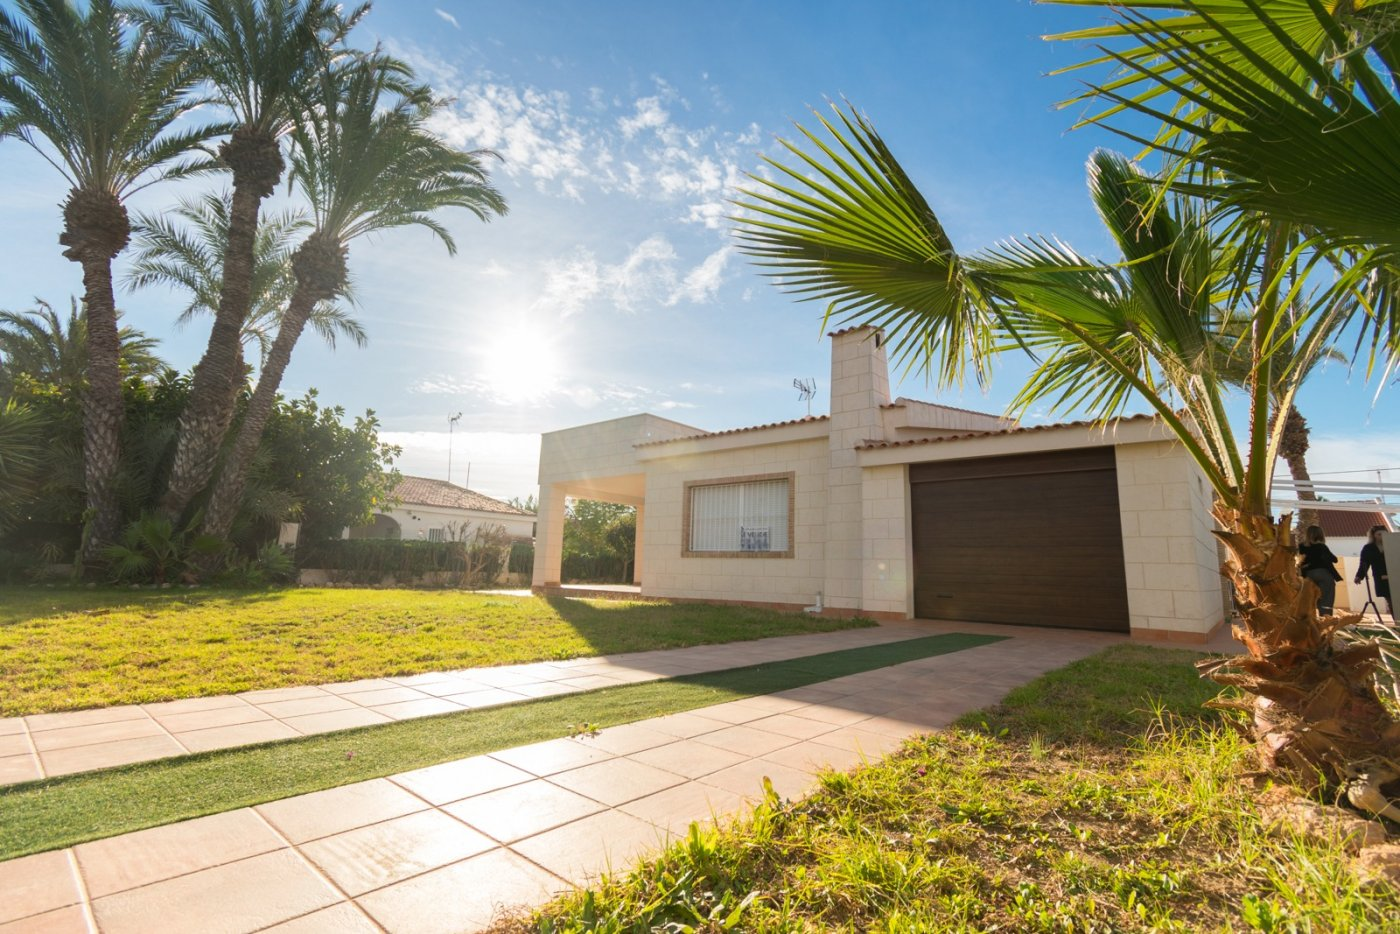 Contemporary villa for sale in an exclusive residential area of Torrevieja, Los Ángeles.